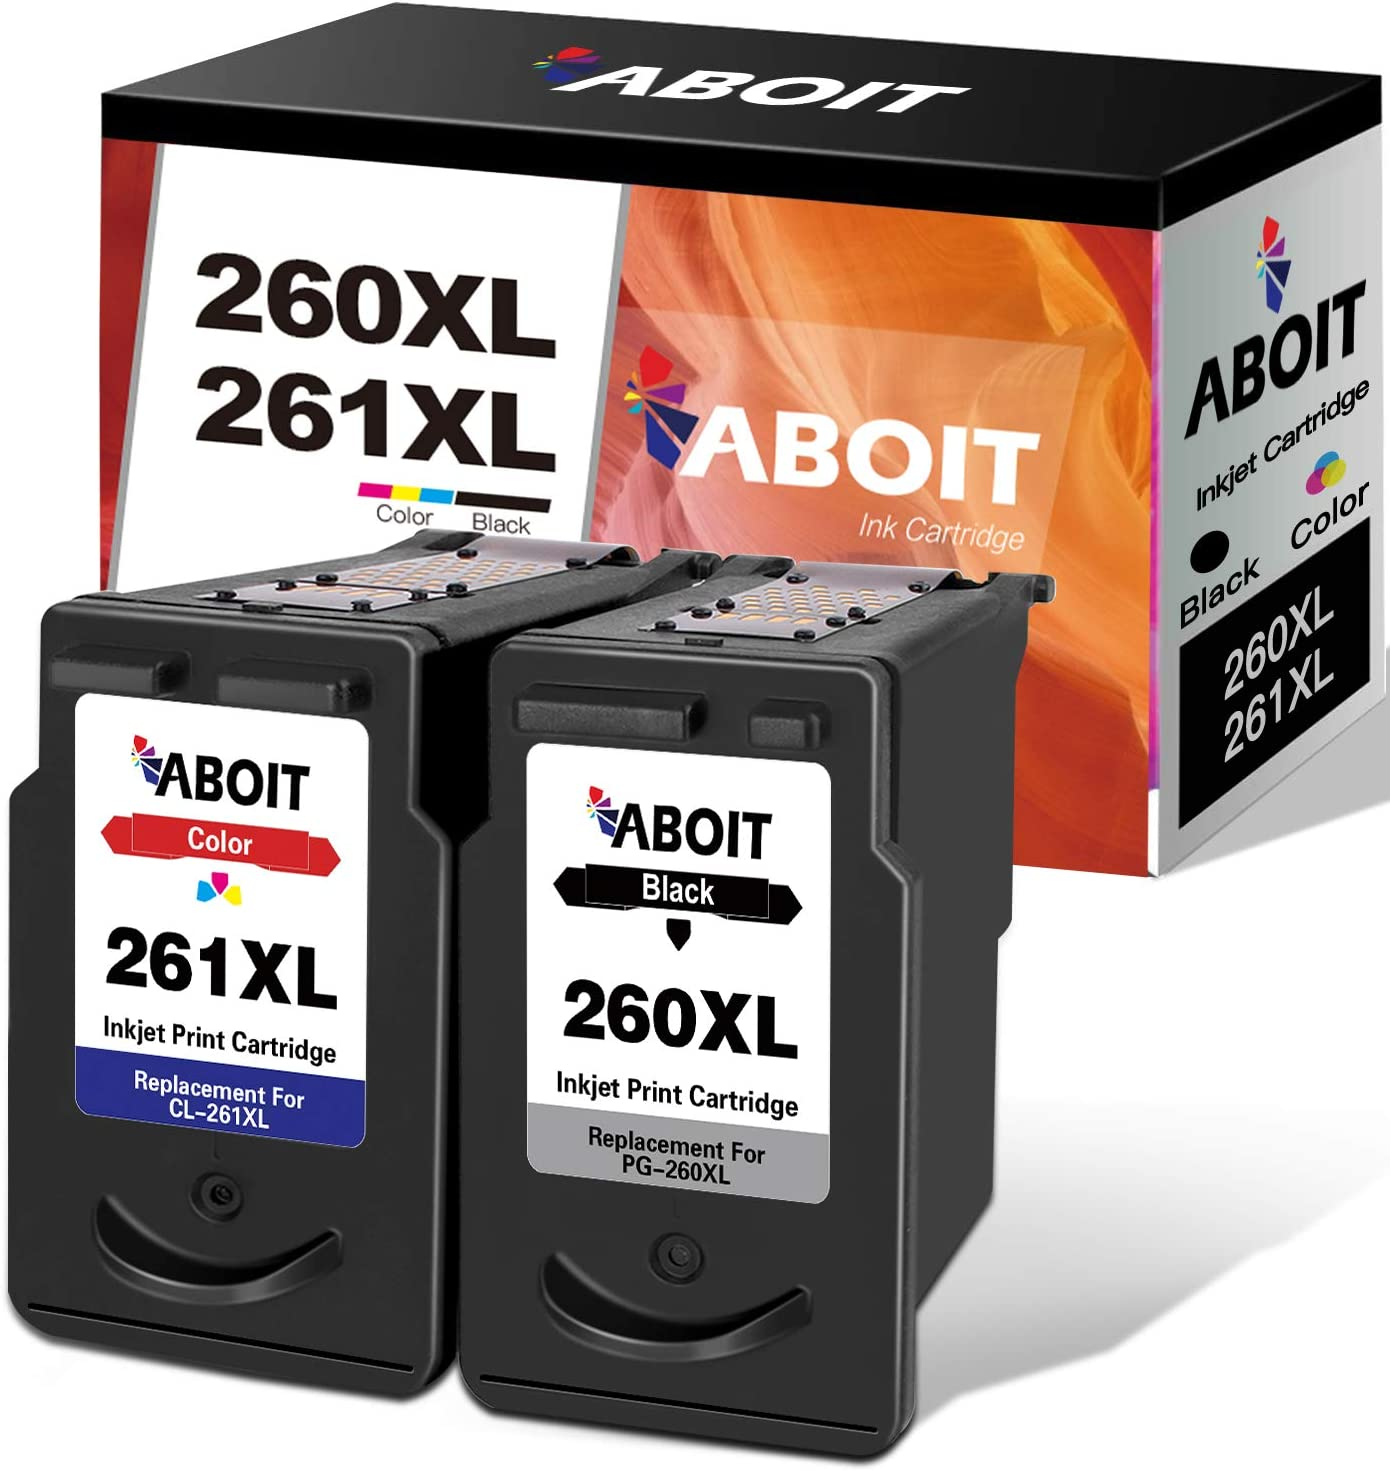 ABOIT Remanufactured Ink Cartridge Replacement for Canon 260XL 261XL 260 XL 261 XL PG-260 XL CL-261 XL Ink with Canon TS5320 TS6420 TR7020 All in One Wireless Printer Tray (2 Pack)